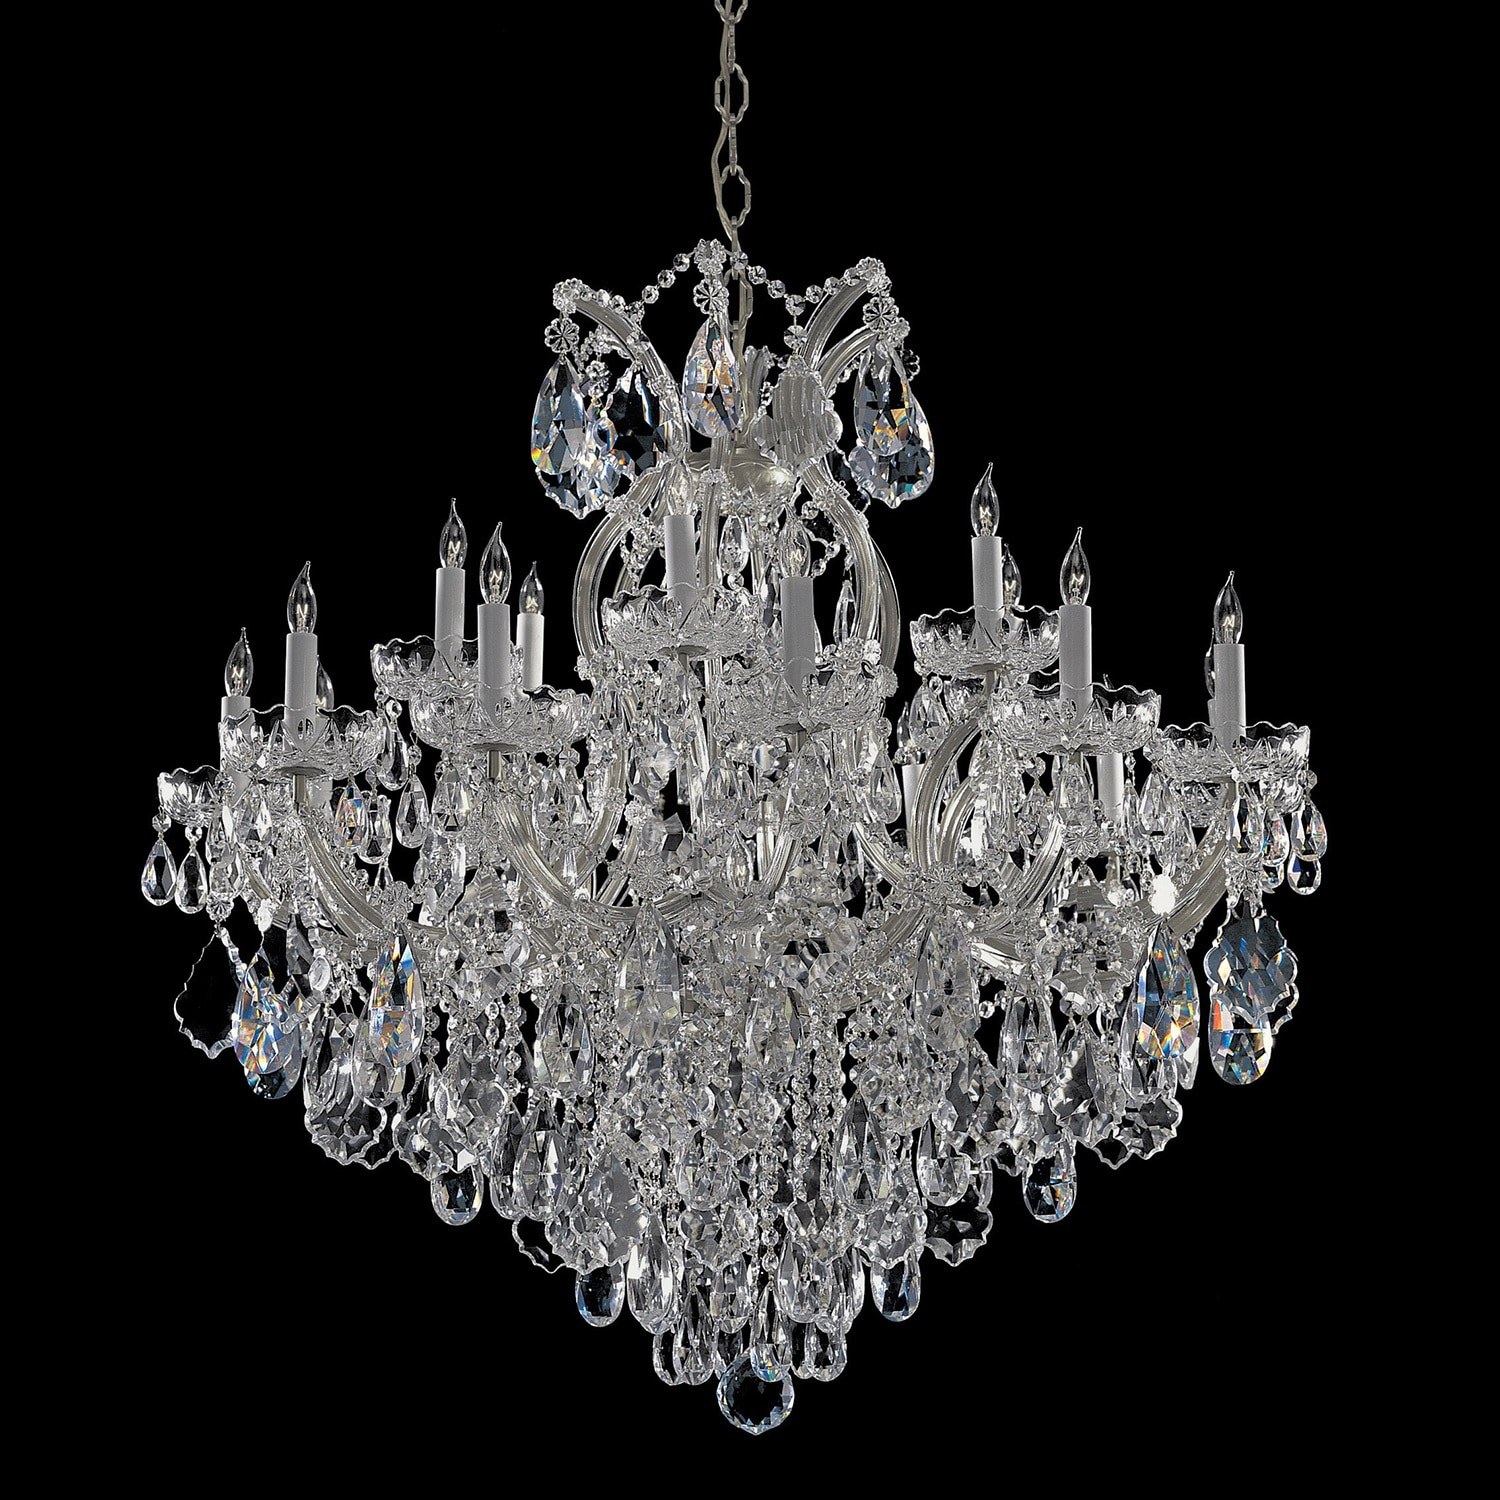 Crystorama maria theresa collection 18 1 light crystal crystorama maria theresa collection 18 1 light crystal chandelier free shipping today overstock 15766983 arubaitofo Choice Image